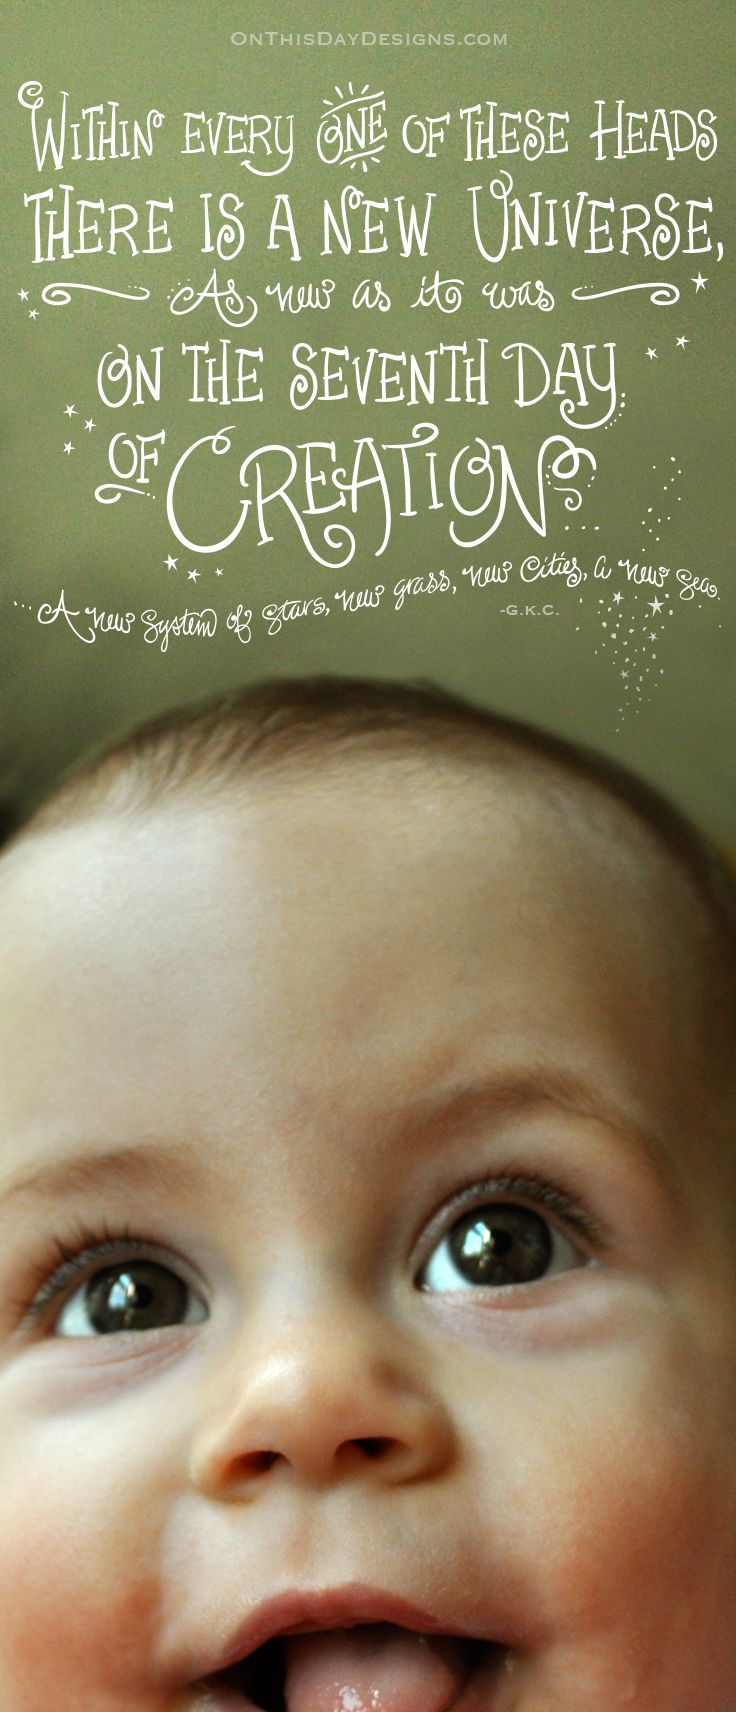 008 Let the little children come to me Catholic Pinterest